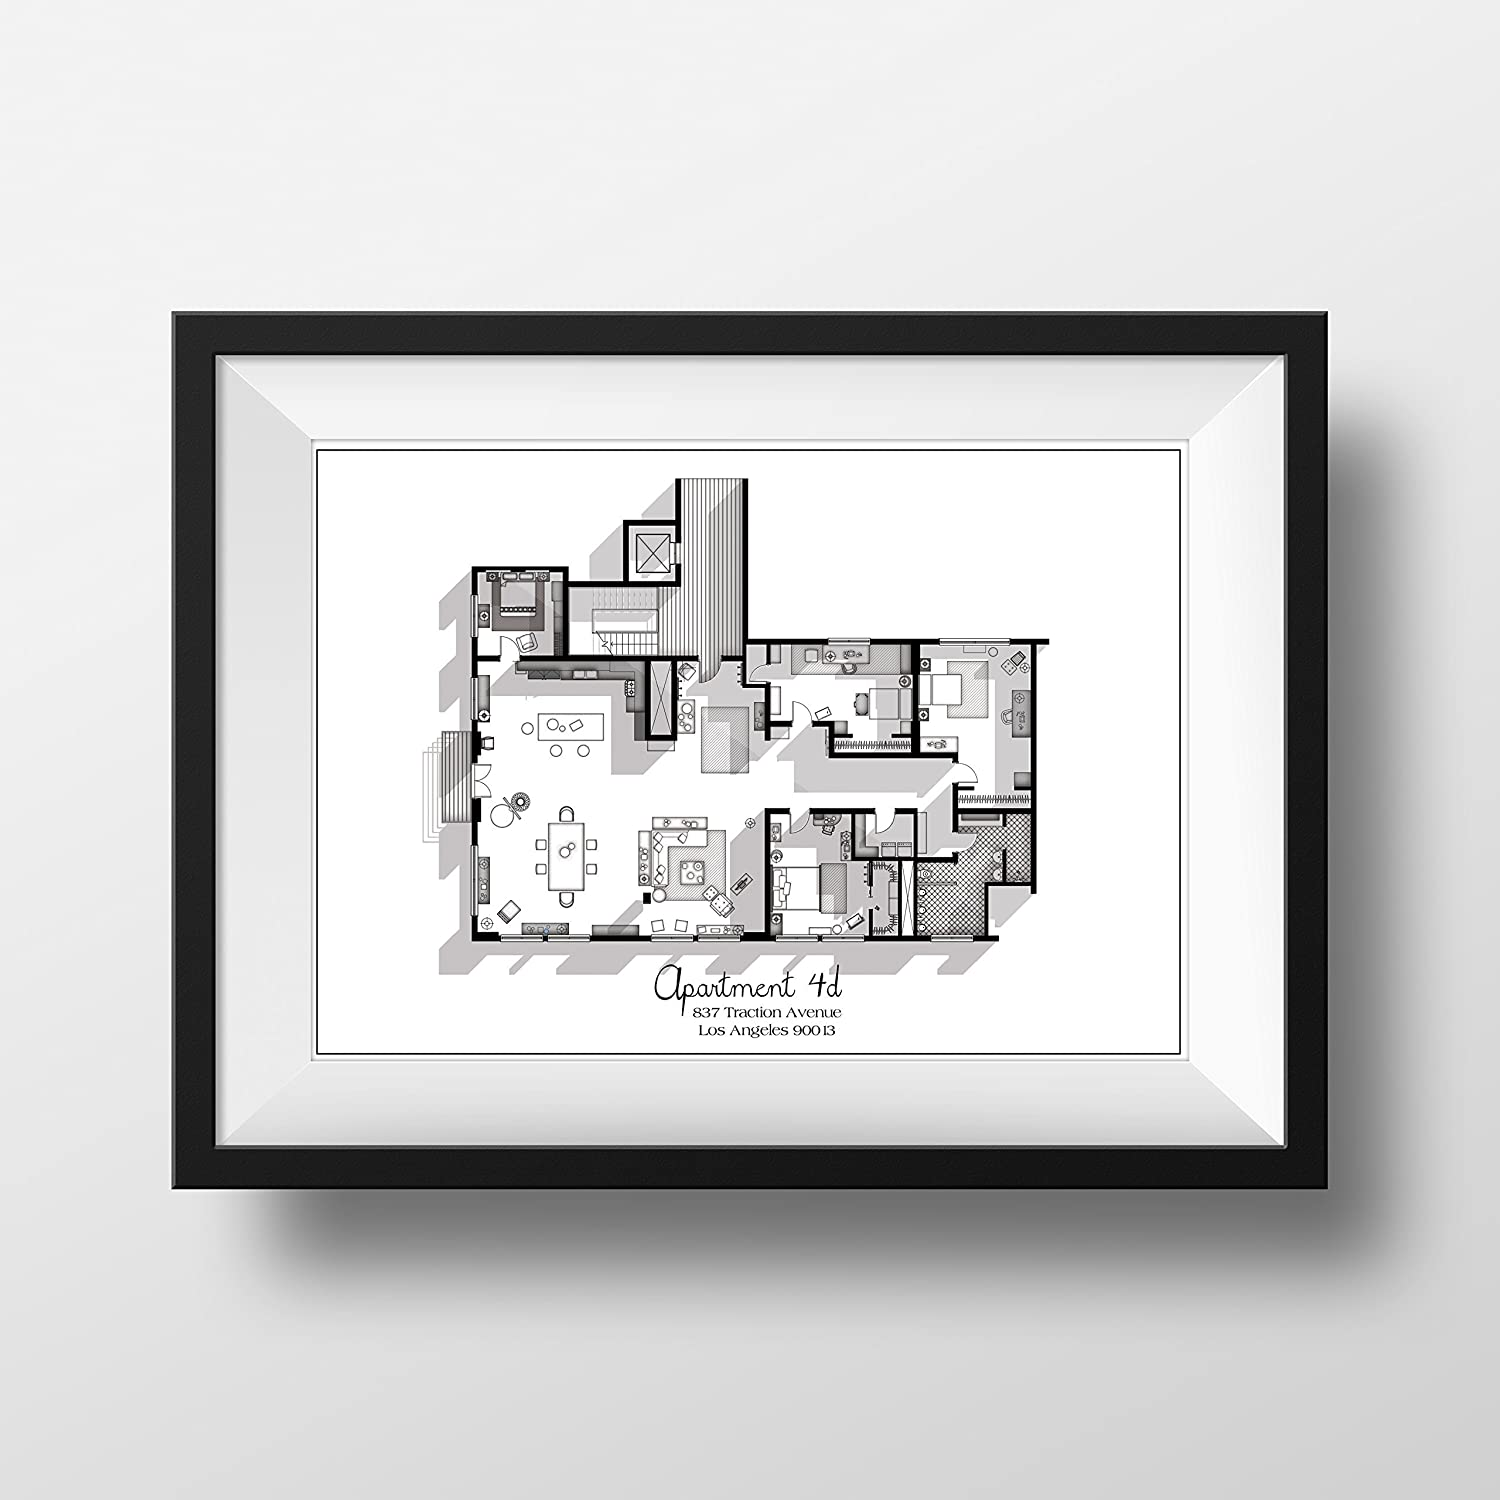 New Girl TV Show Apartment Floor Plan - Black and White Edition- New Girl TV Show Layout - Apartment 4D Floor Plan - New Girl Poster - Gift Idea for New Girl Fan